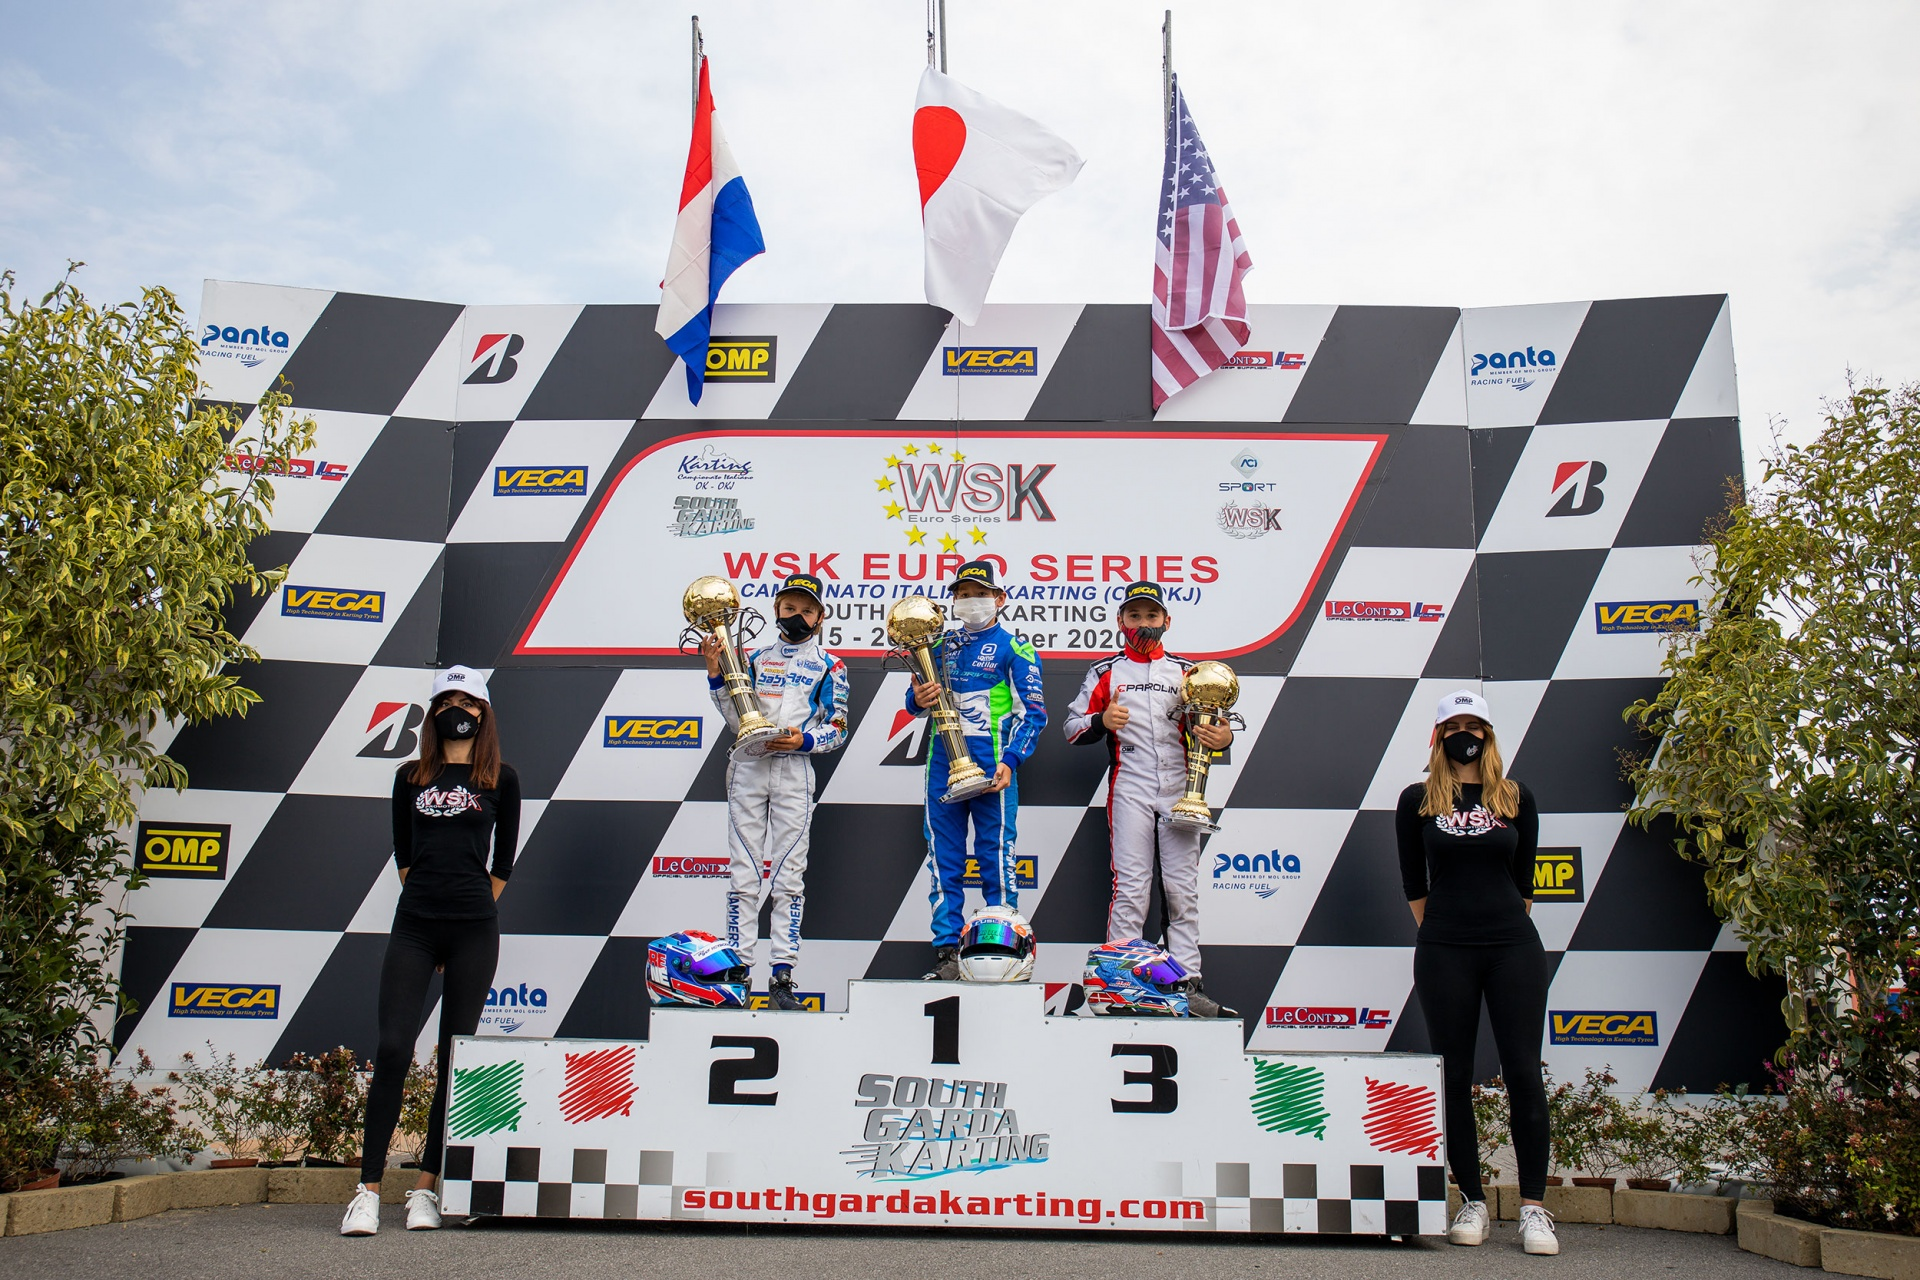 Kai Sorensen on podium in the Euro Series WSK weekend